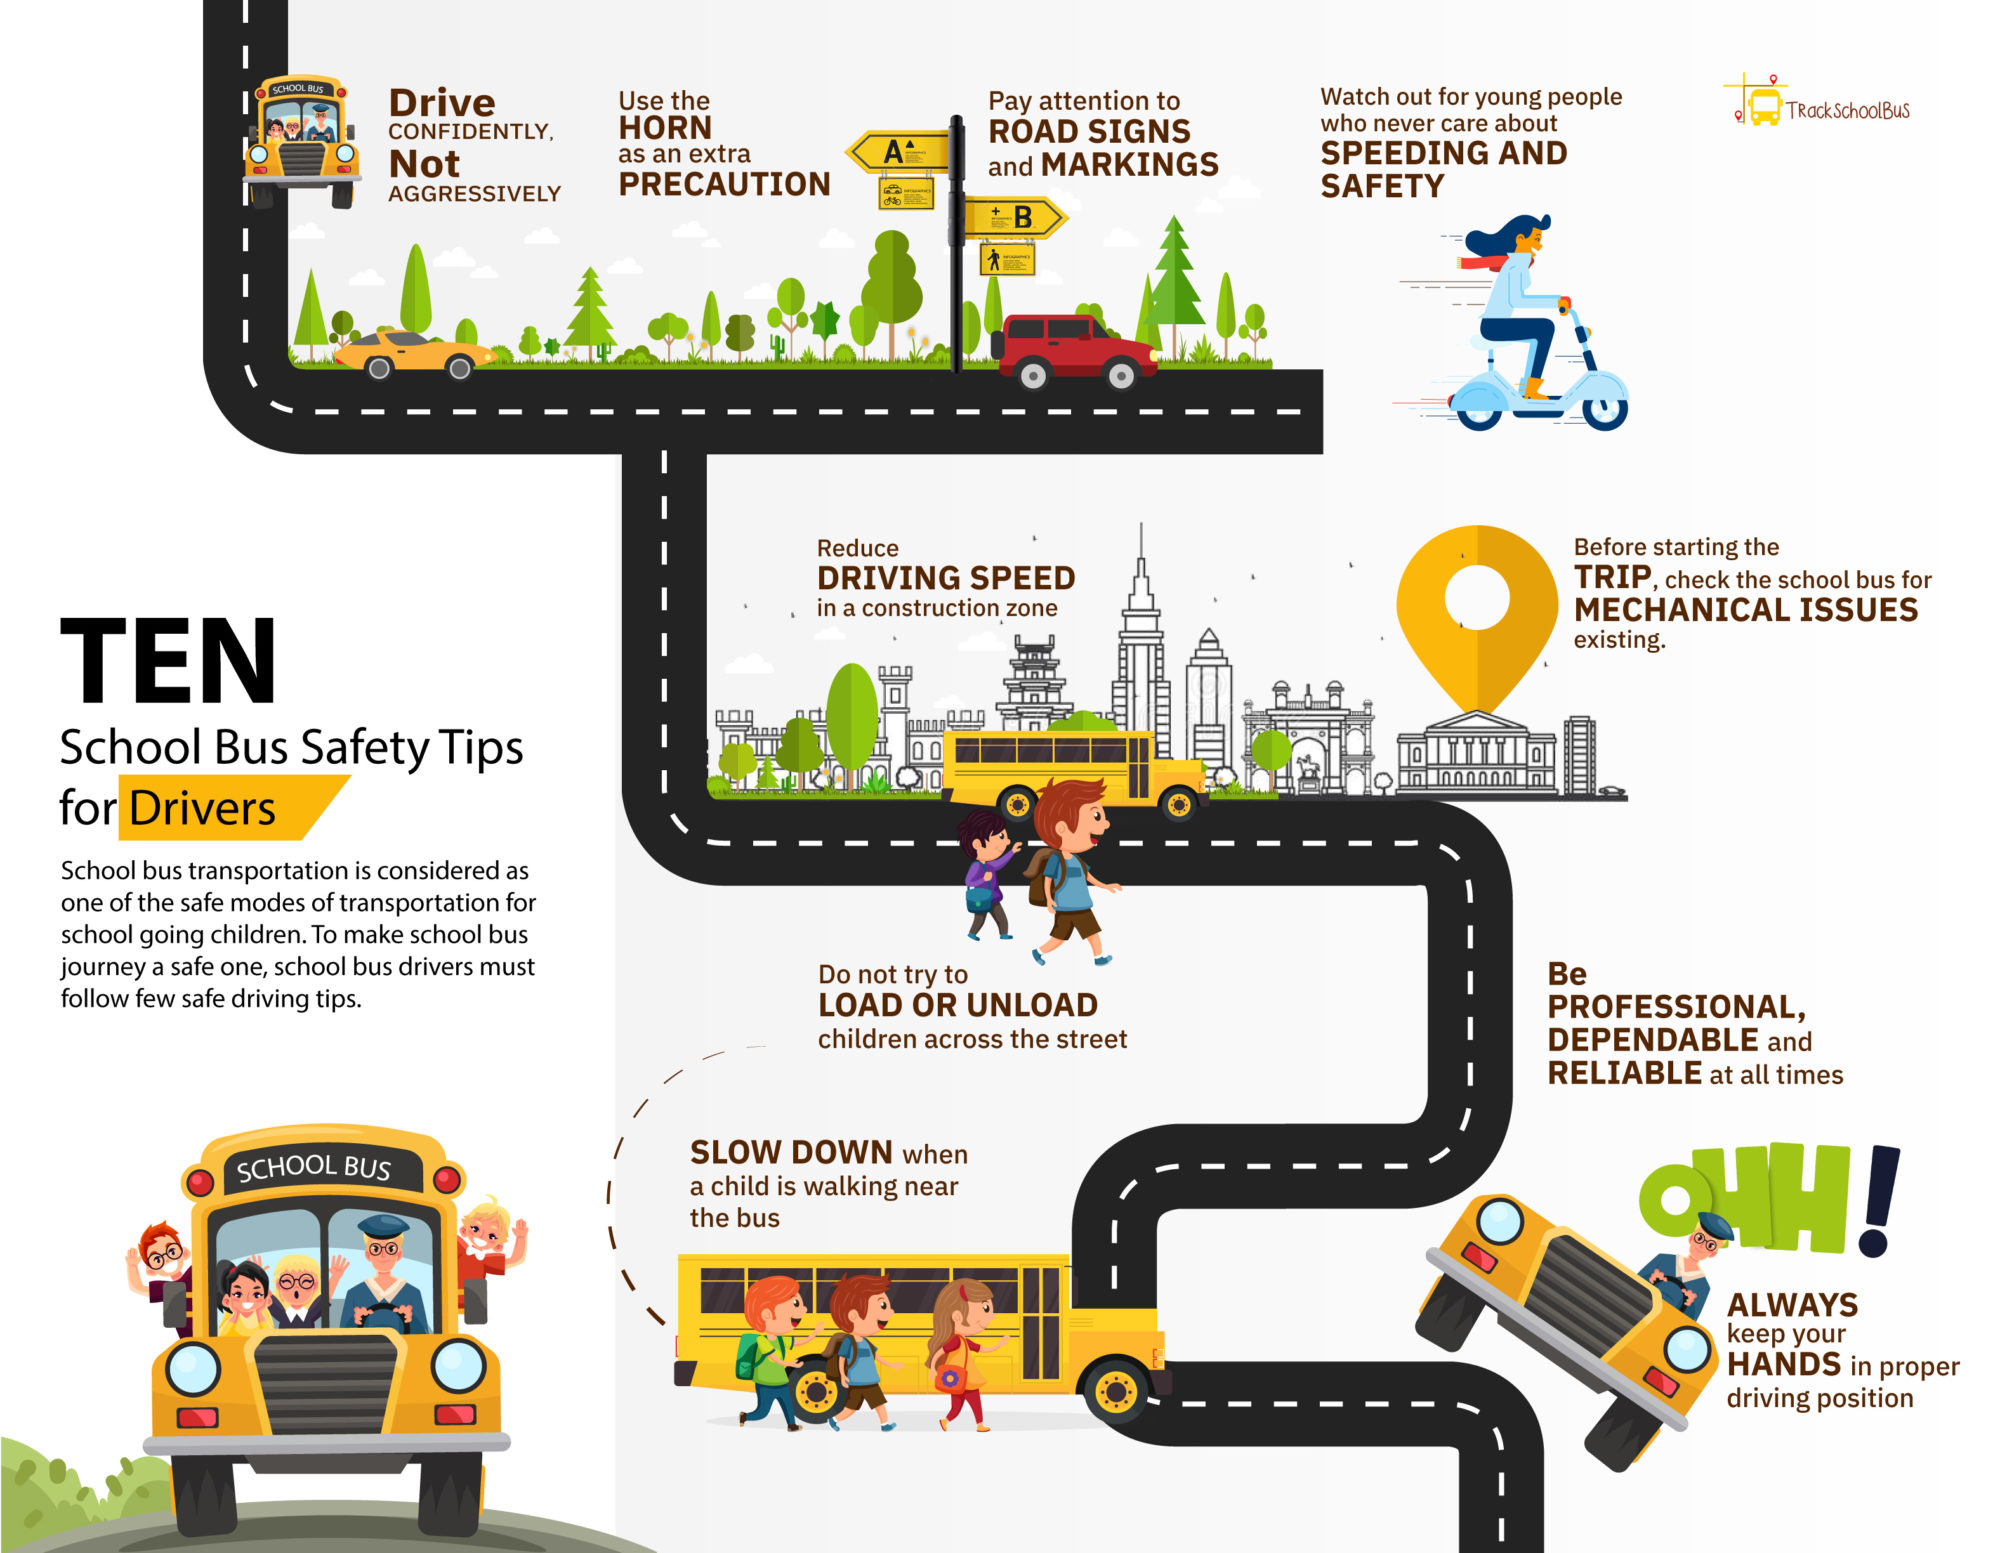 10 School Bus Safety Tips for Drivers